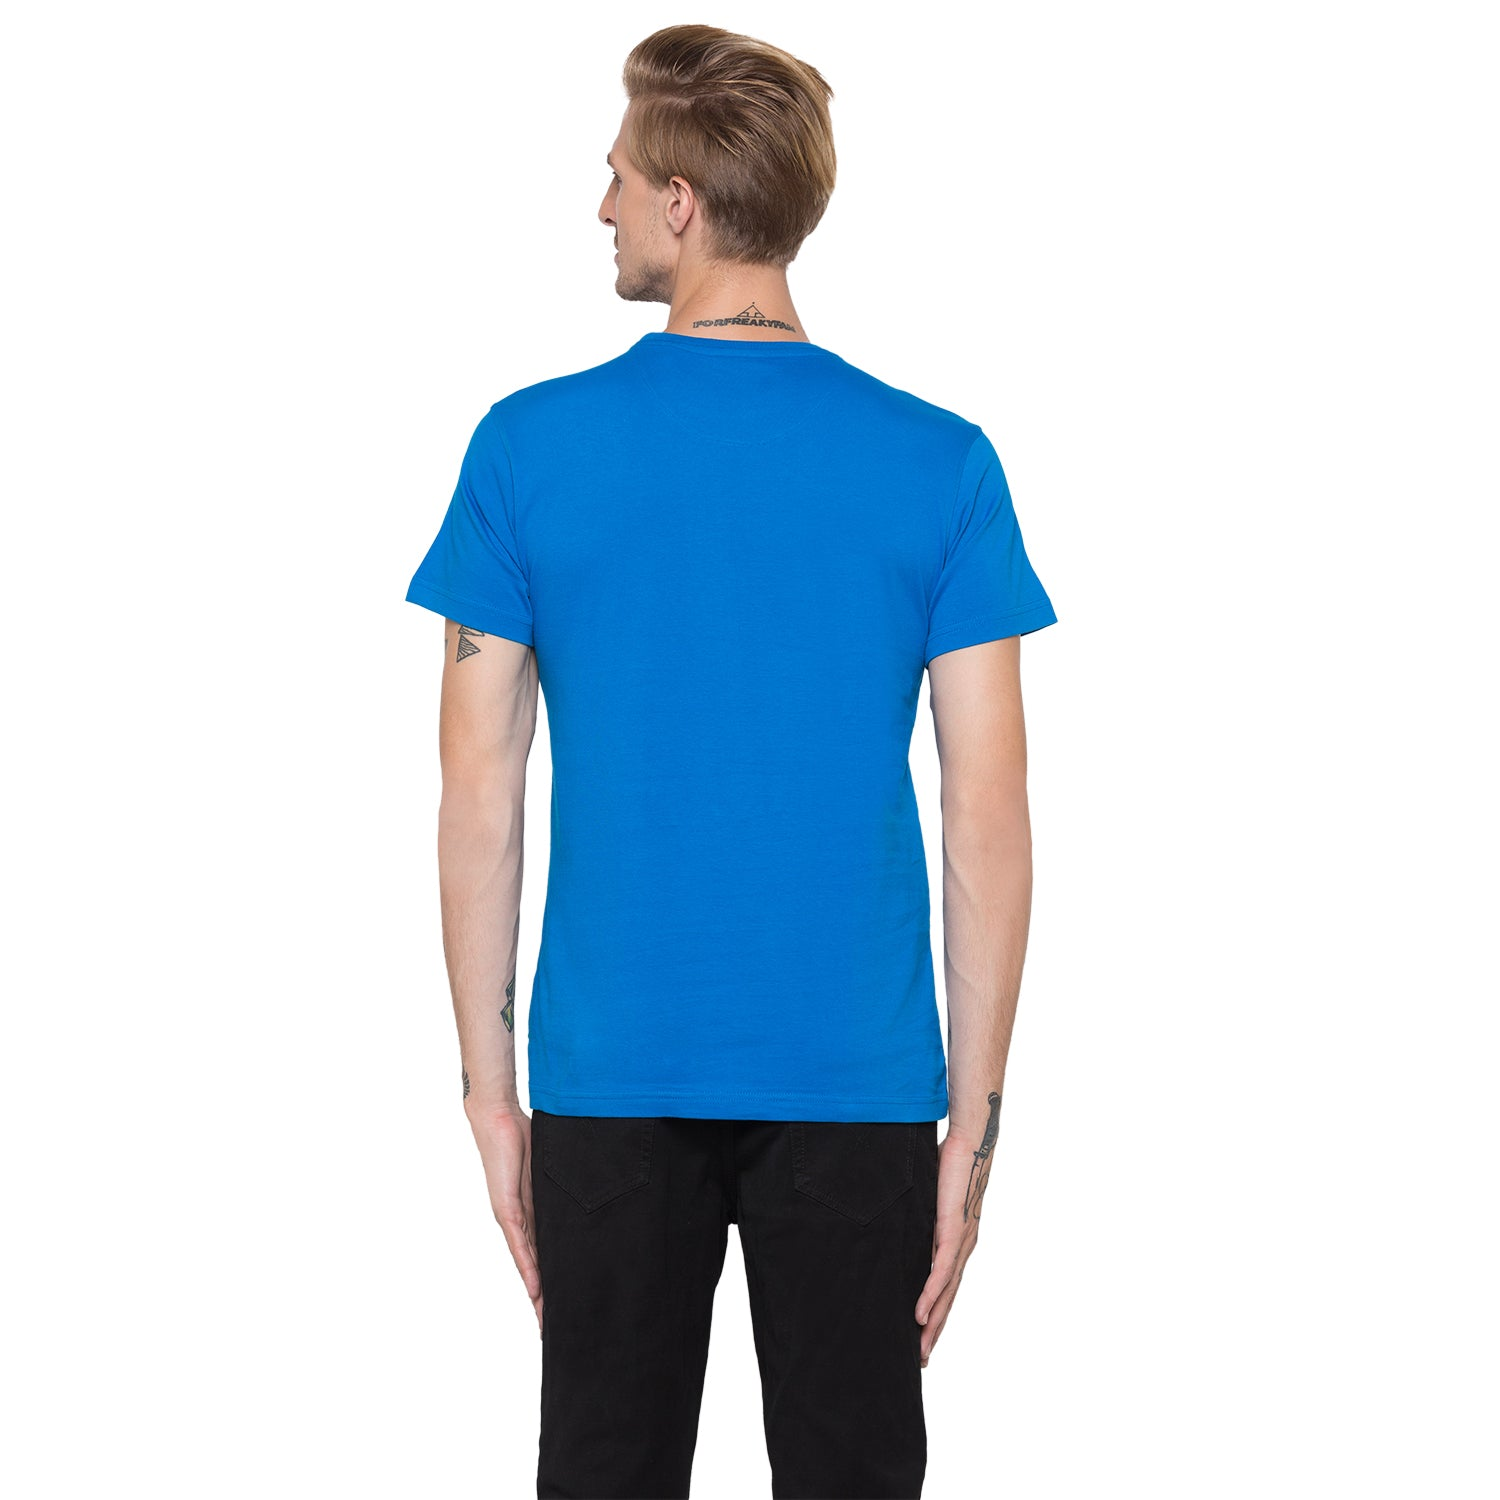 Globus Blue Printed T-Shirt-3